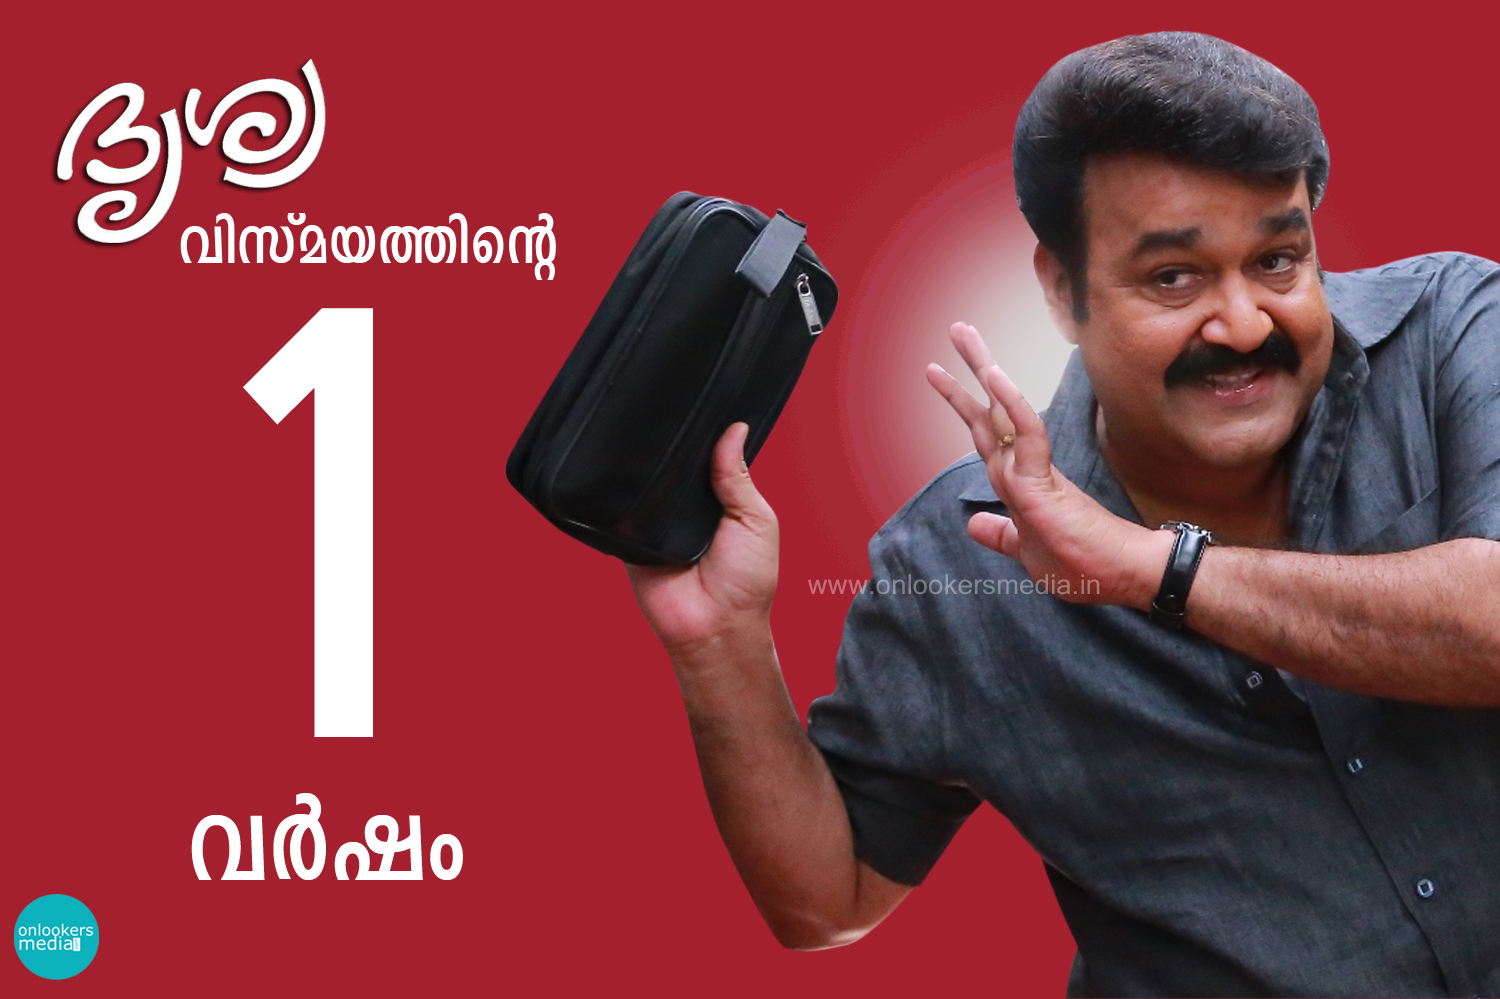 First anniversary of the wonder named Drishyam-Mohanlal-Onlookers Media